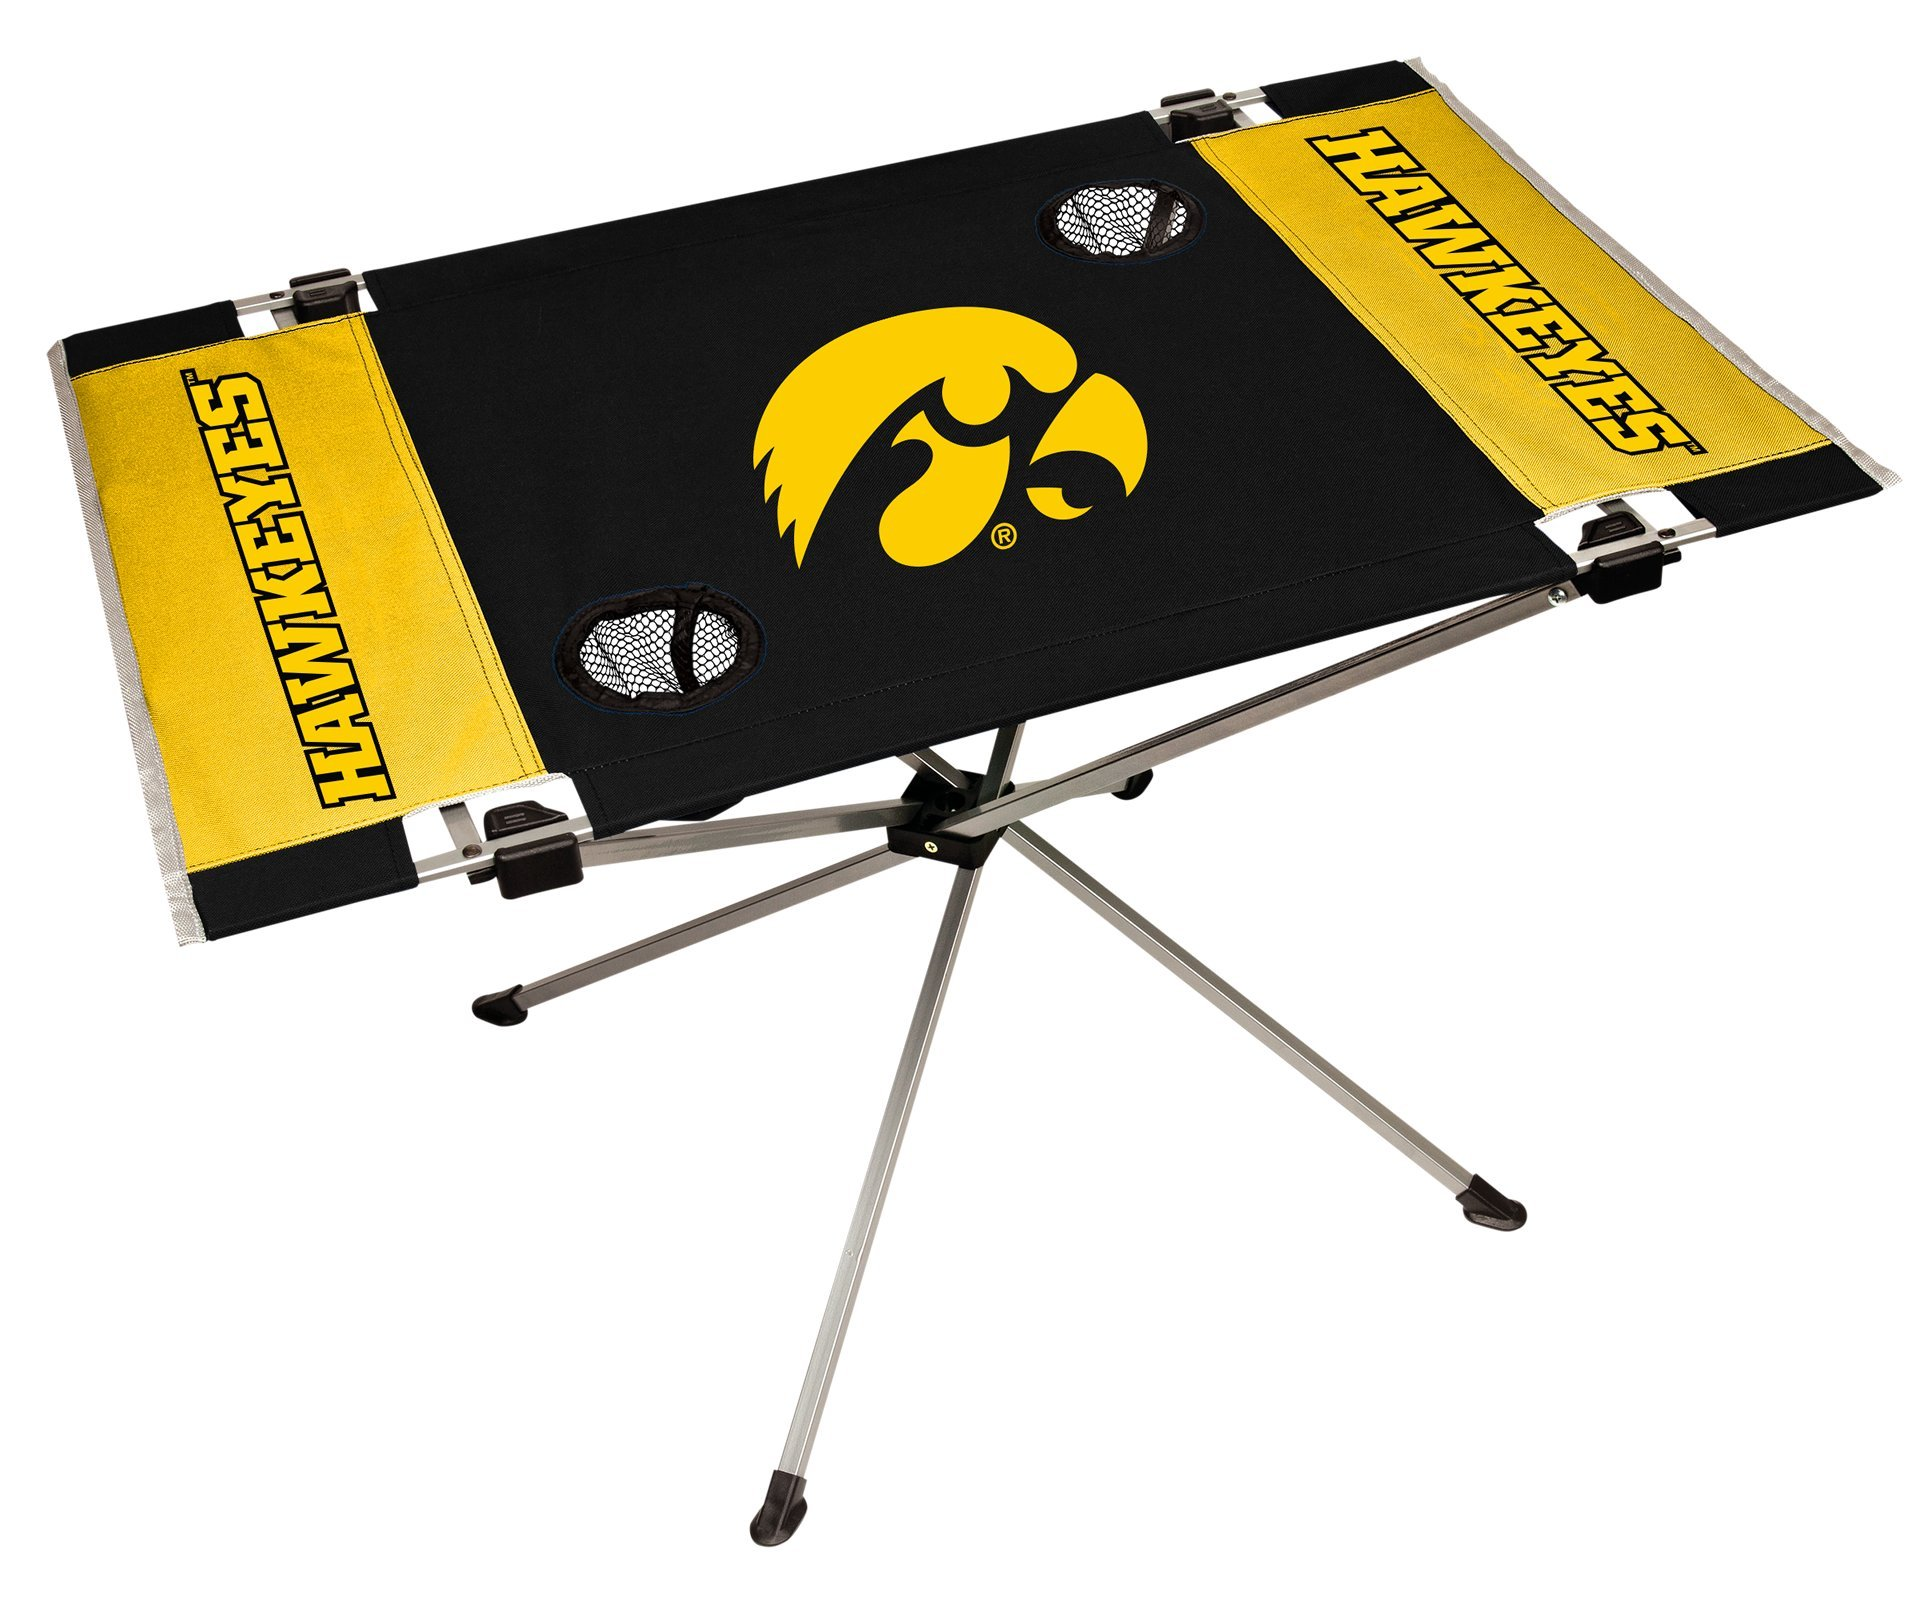 Rawlings NCAA Portable Folding Endzone Table, 31.5 in x 20.7 in x 19 in by Rawlings